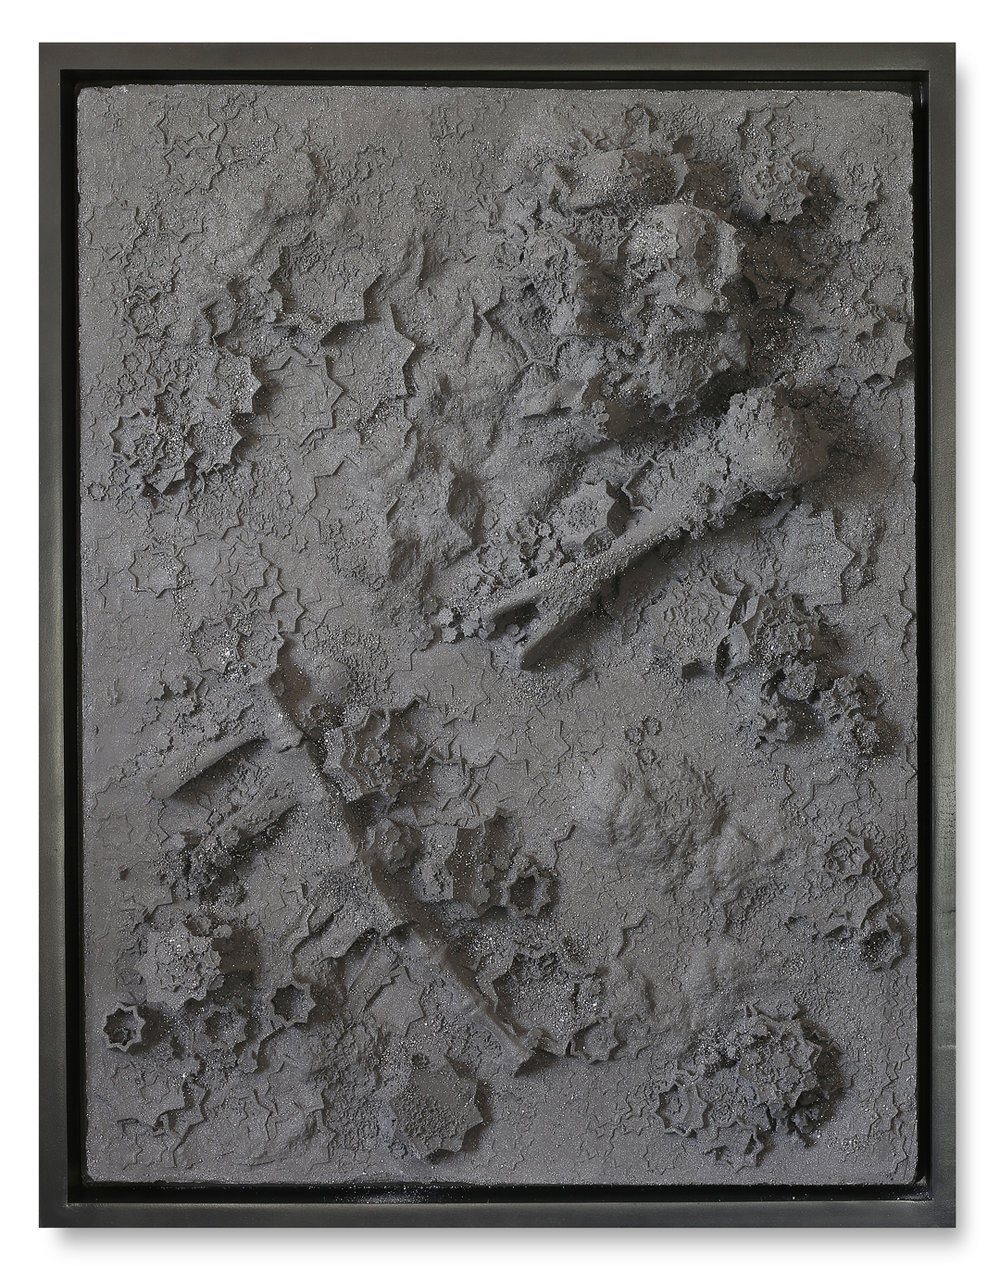 Silver Plaster Rectangle #1, 2017 -  Kôhl and plaster on wood panel - 40.1 x 30.3 in | 102 x 77 cm